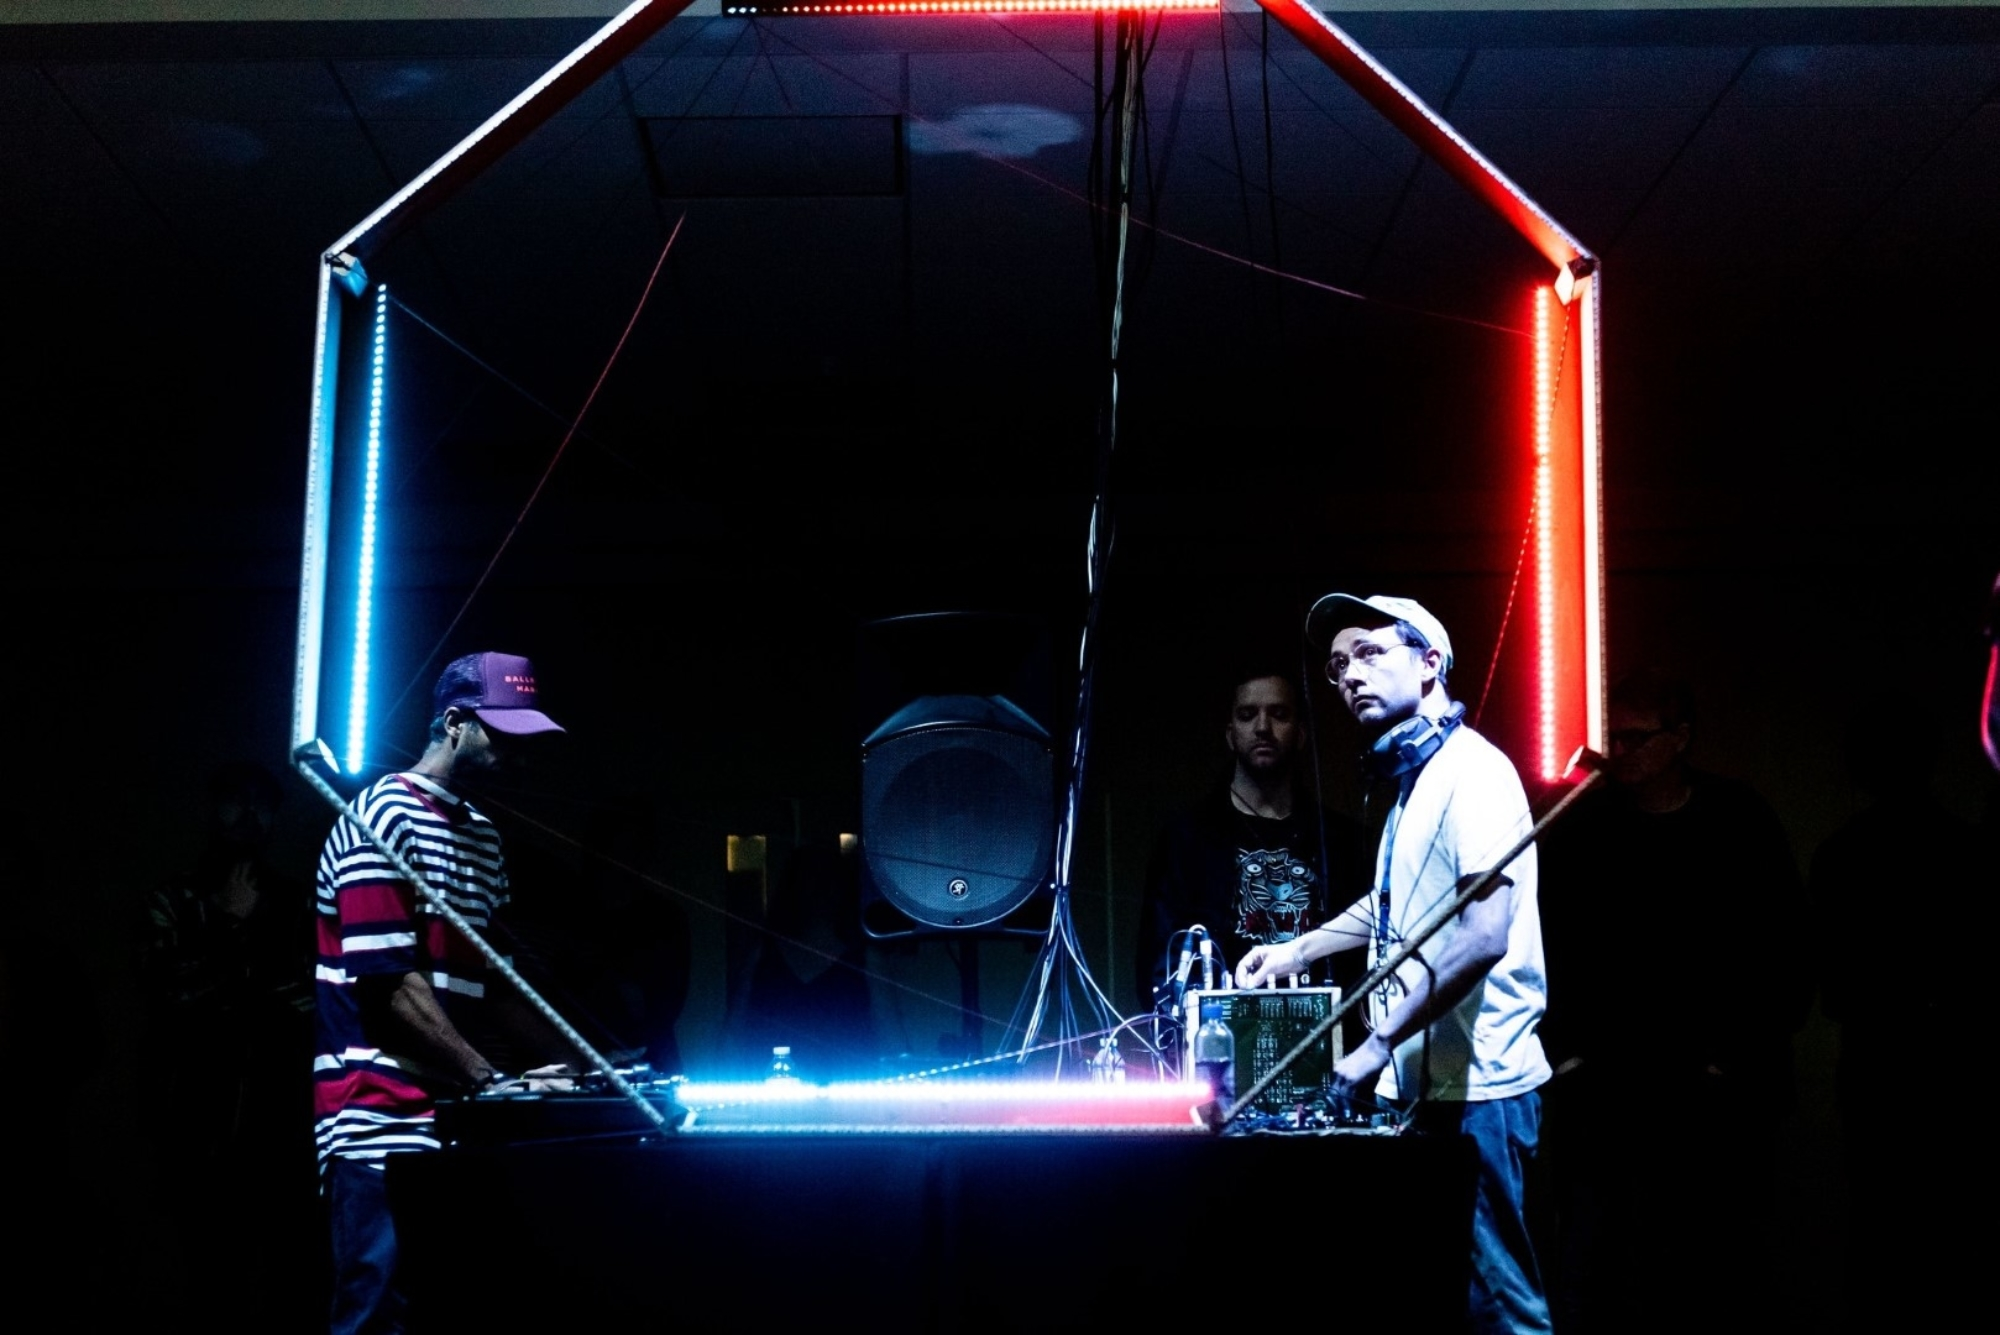 Last Dance: The Wave Epoch (2018) - Haroon Mirza